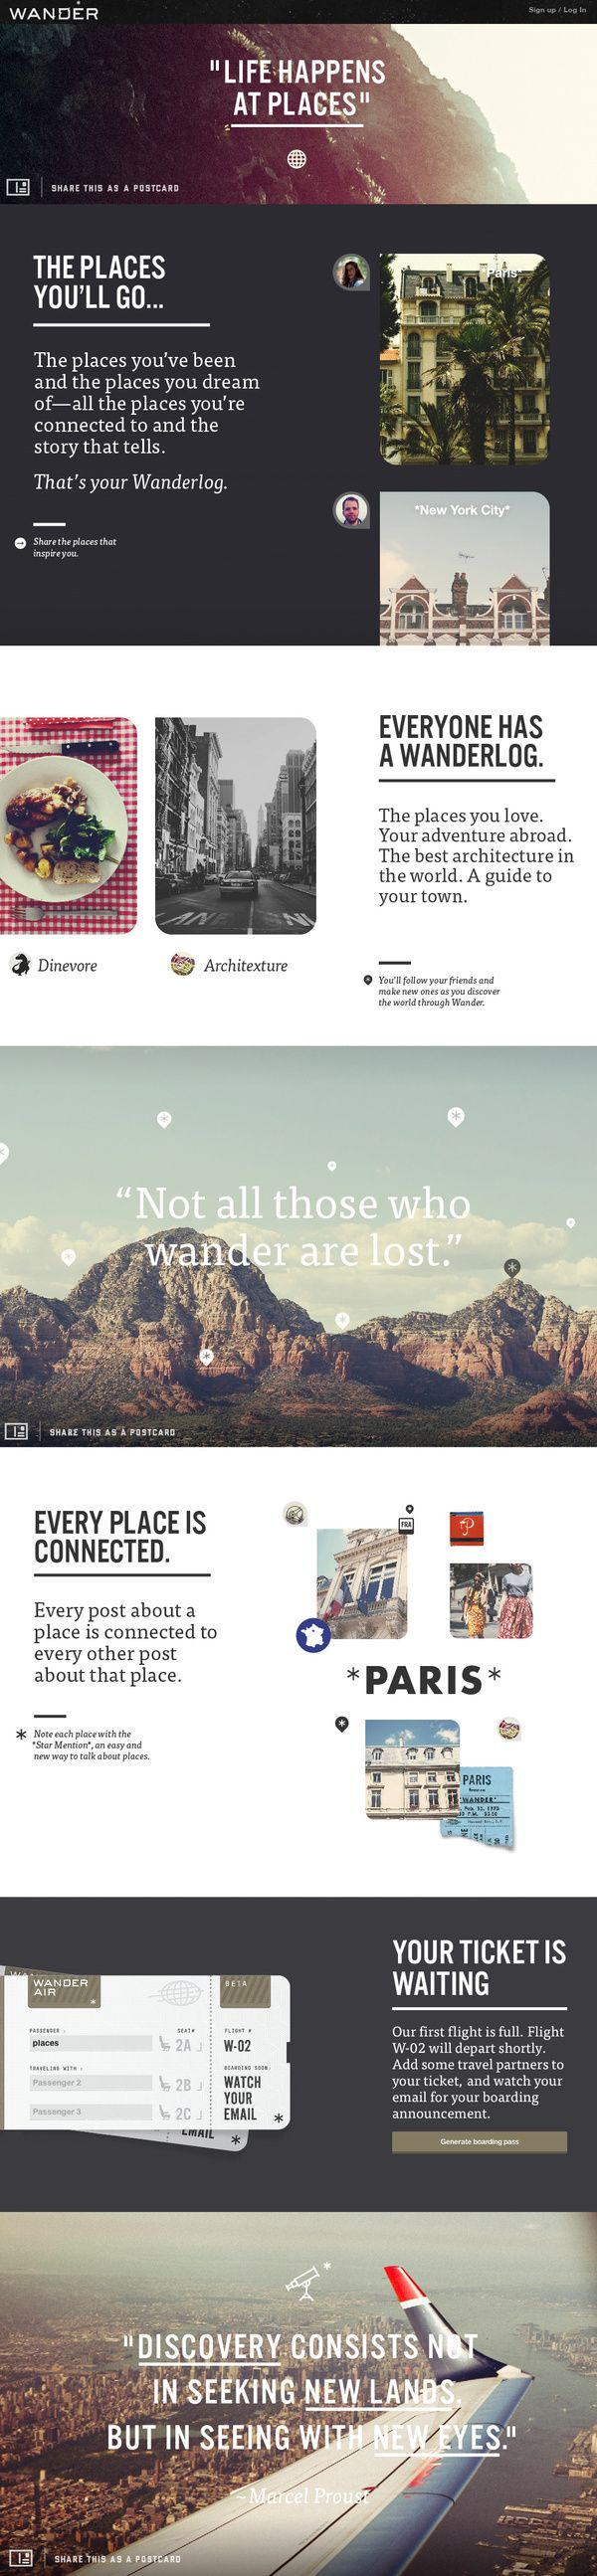 Wander Product Summary Page by Wander , via Behance